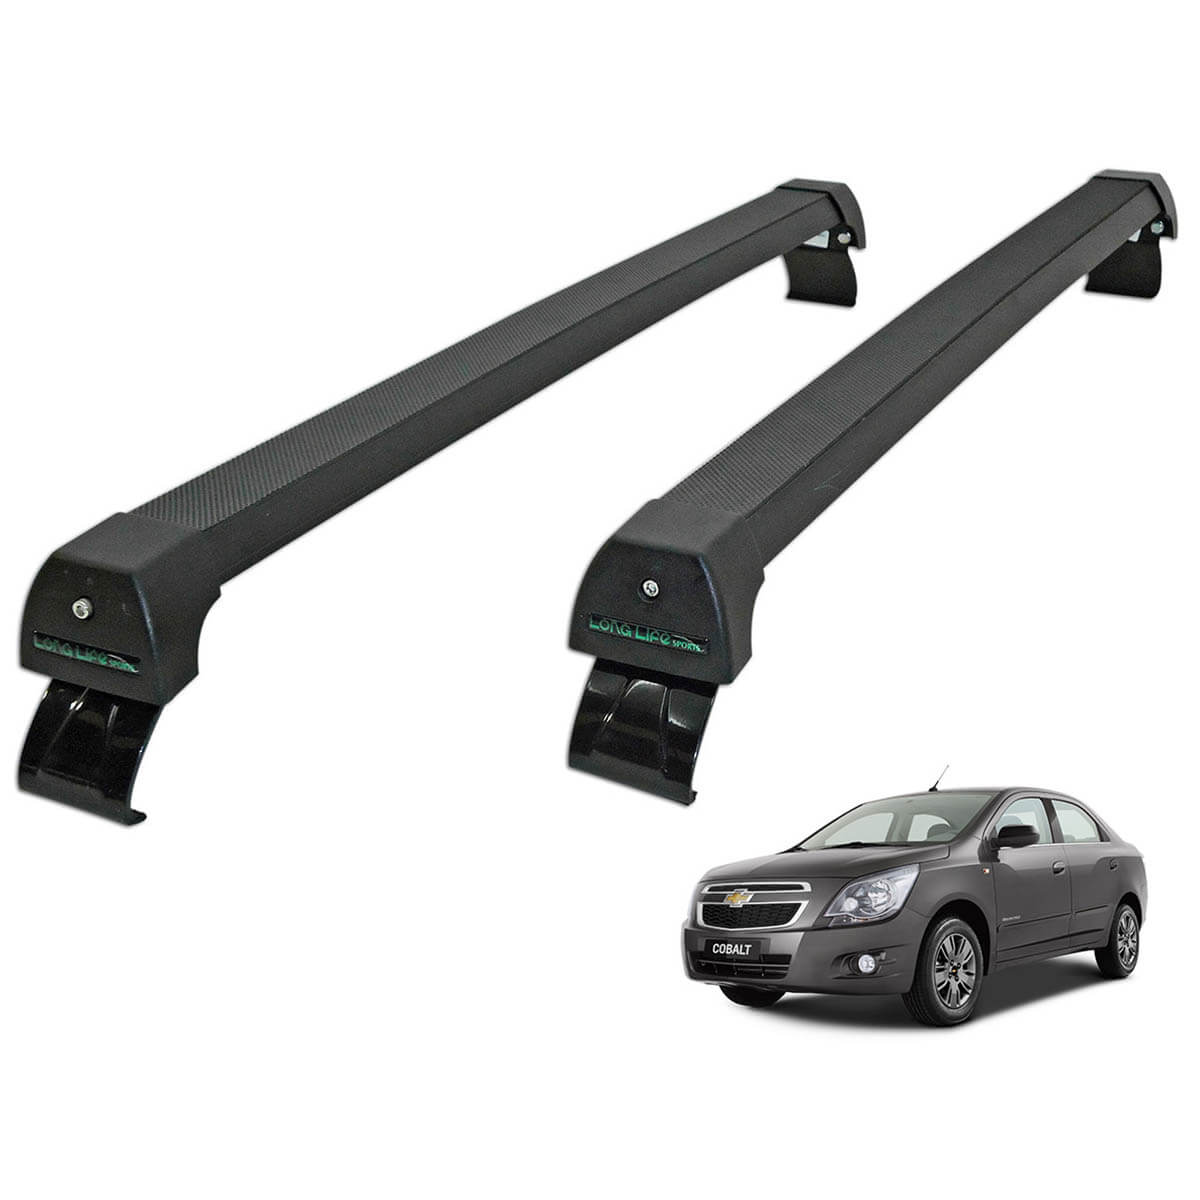 Rack de teto Long Life Sports preto Cobalt 2012 a 2020